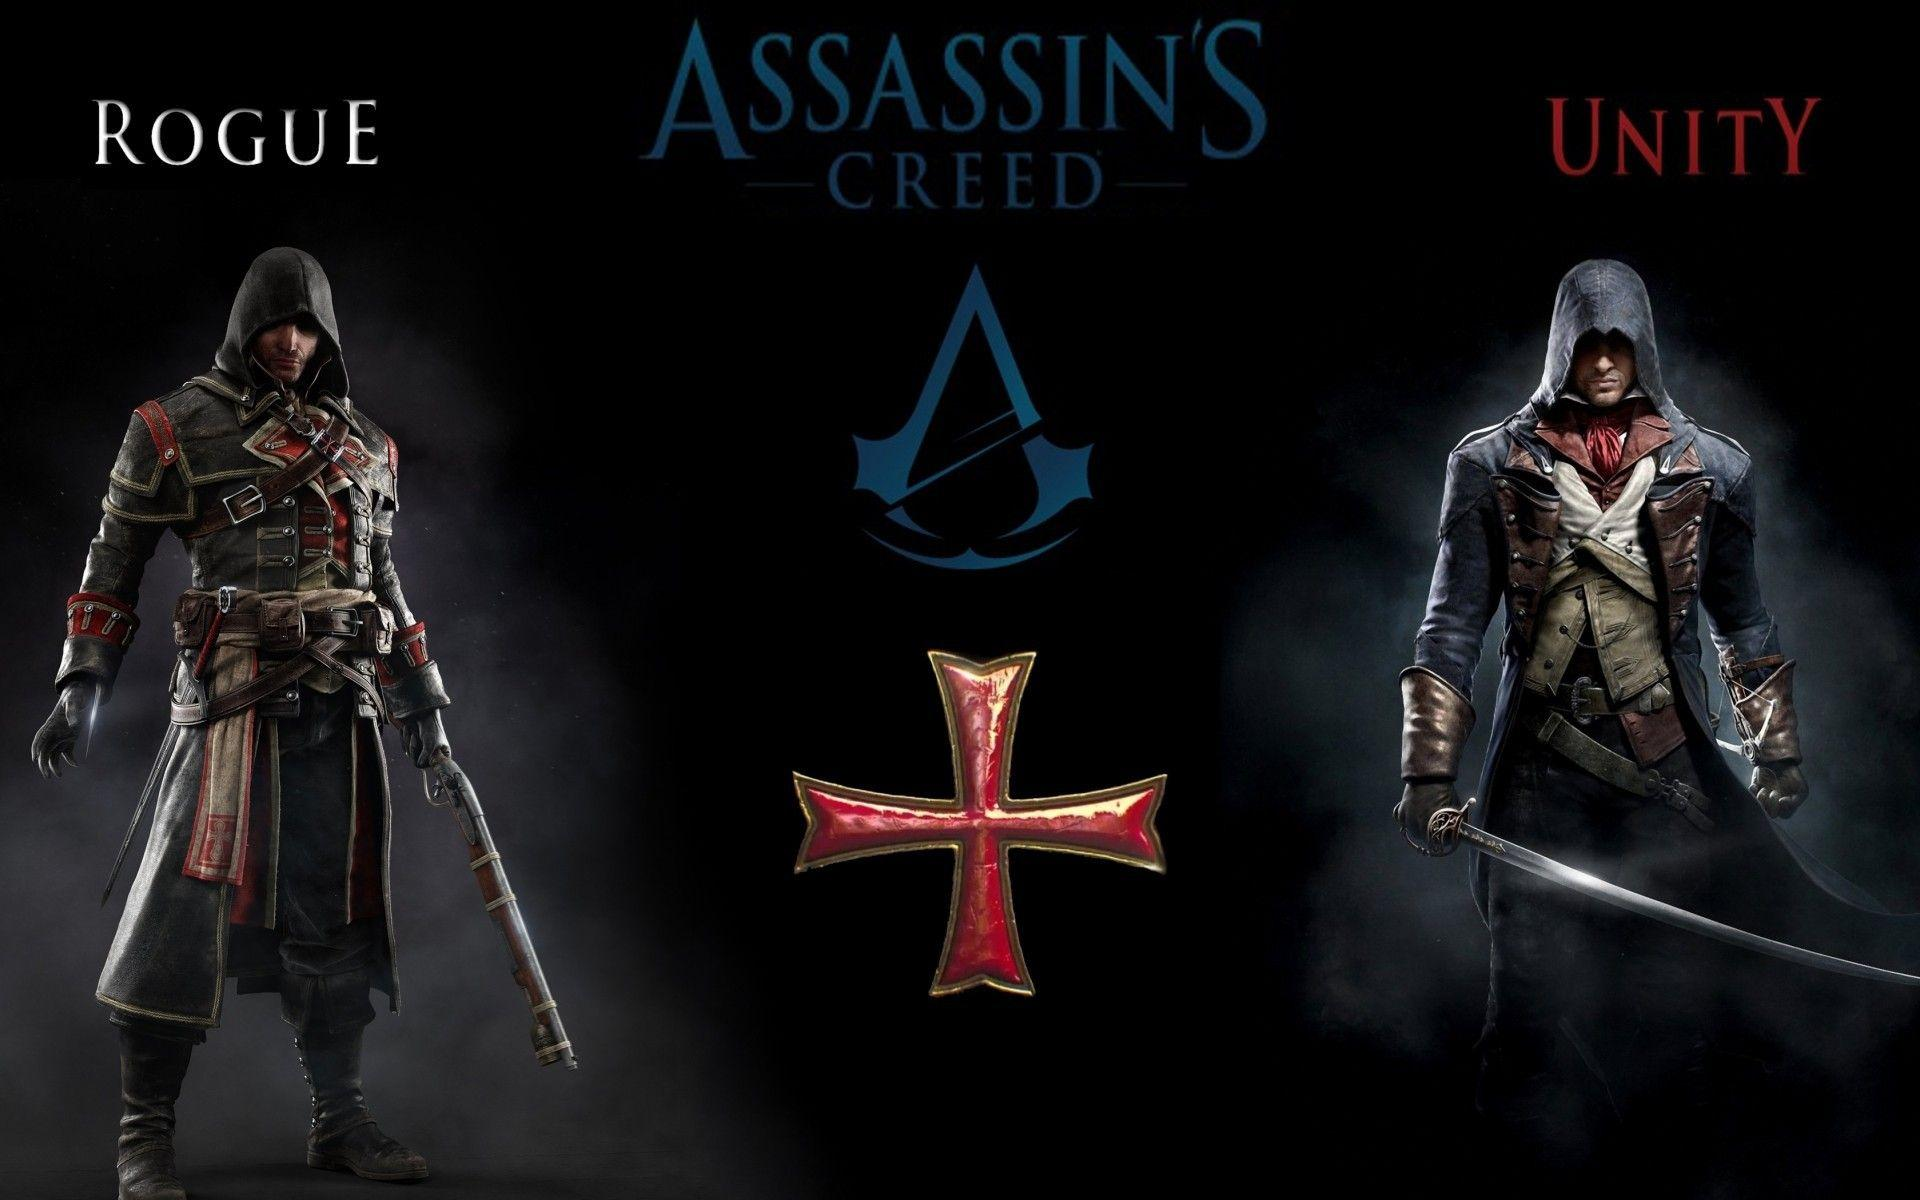 wallpul.info/i/2016/11/assassins-creed-rogue-wallp...